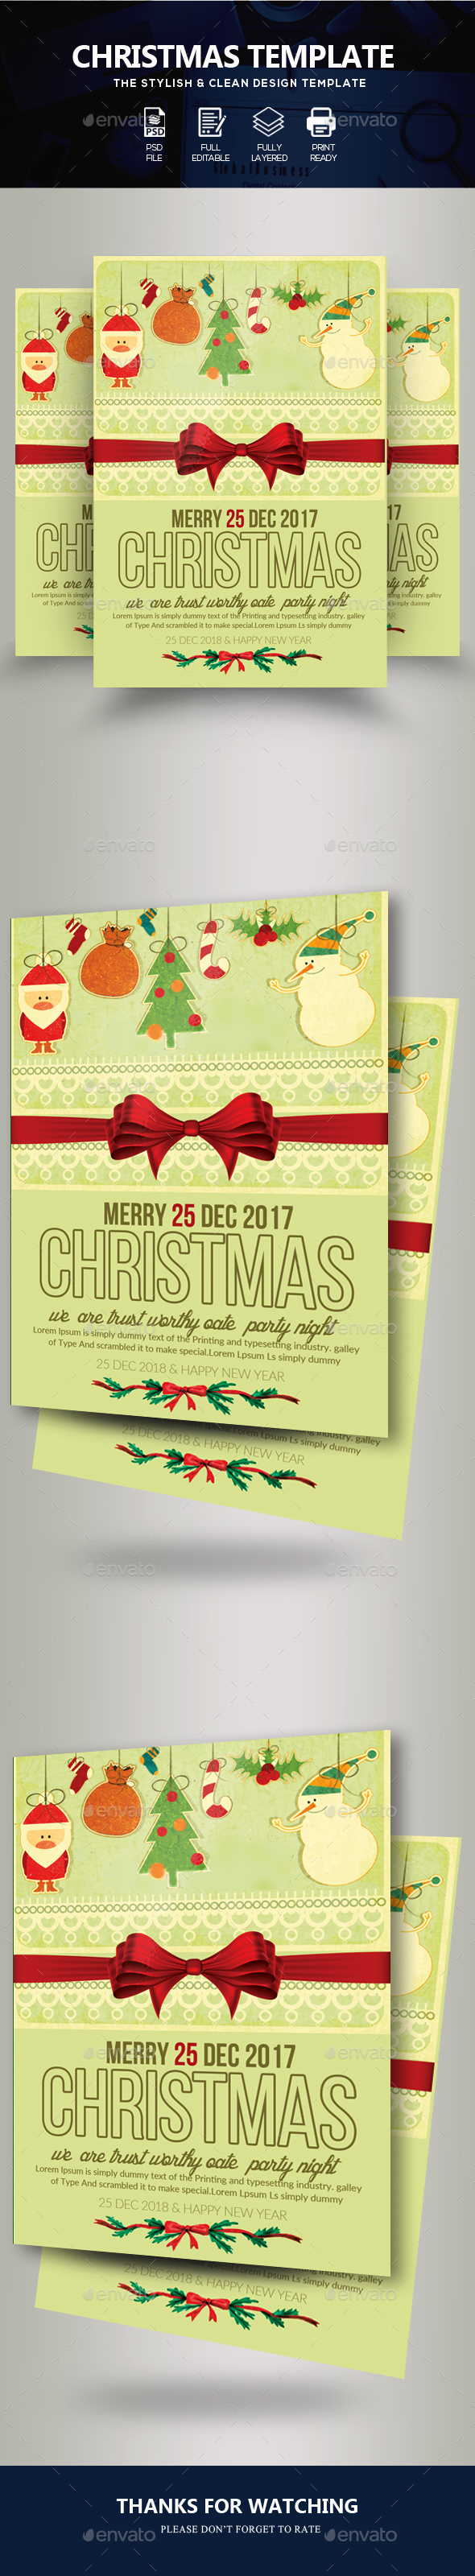 Charistmas Flyer Template - Events Flyers